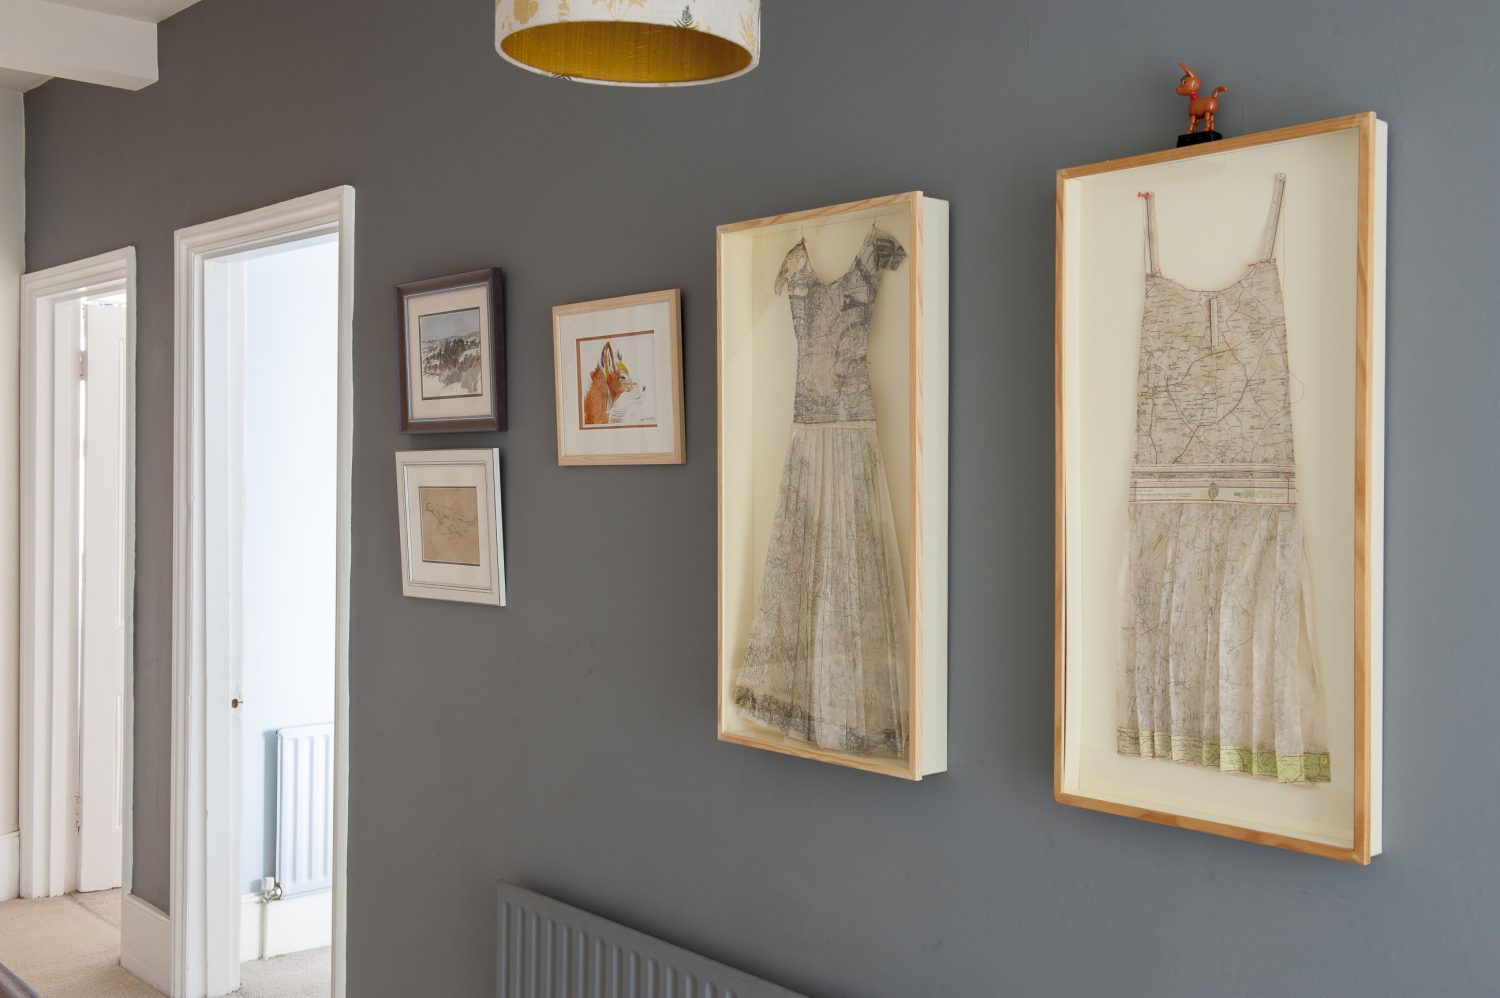 On the landing. Louise made the paper dresses out of old maps